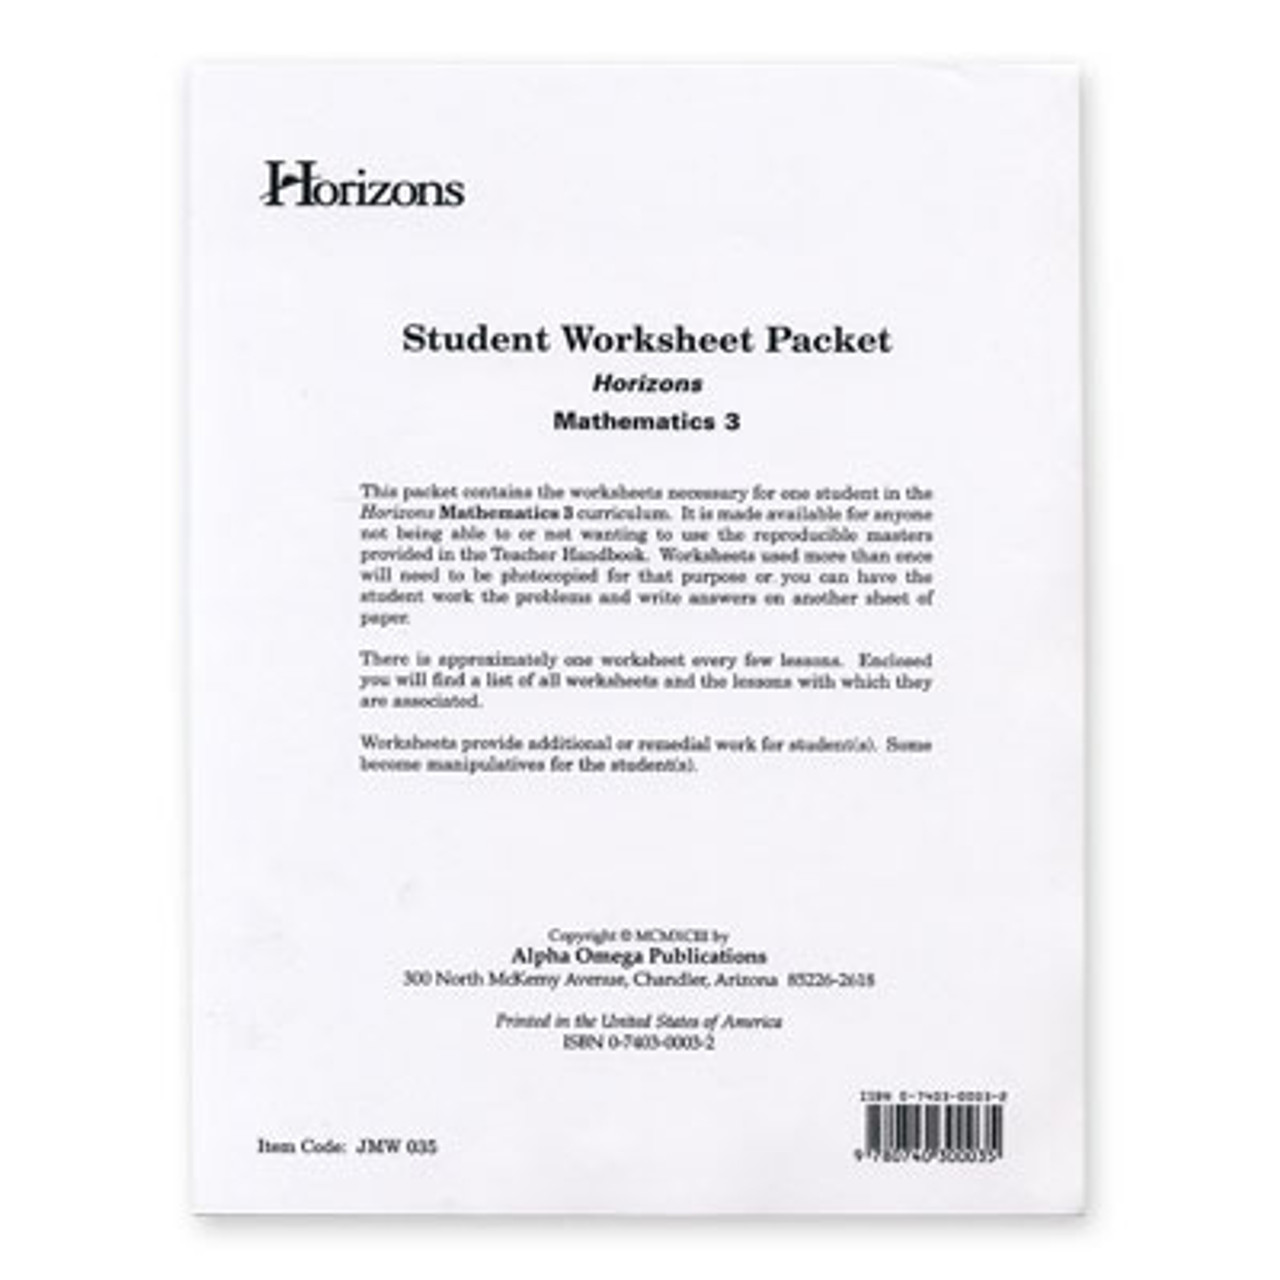 HORIZONS 3rd Grade Math Student Worksheet Packet - All Things New [ 1280 x 1280 Pixel ]